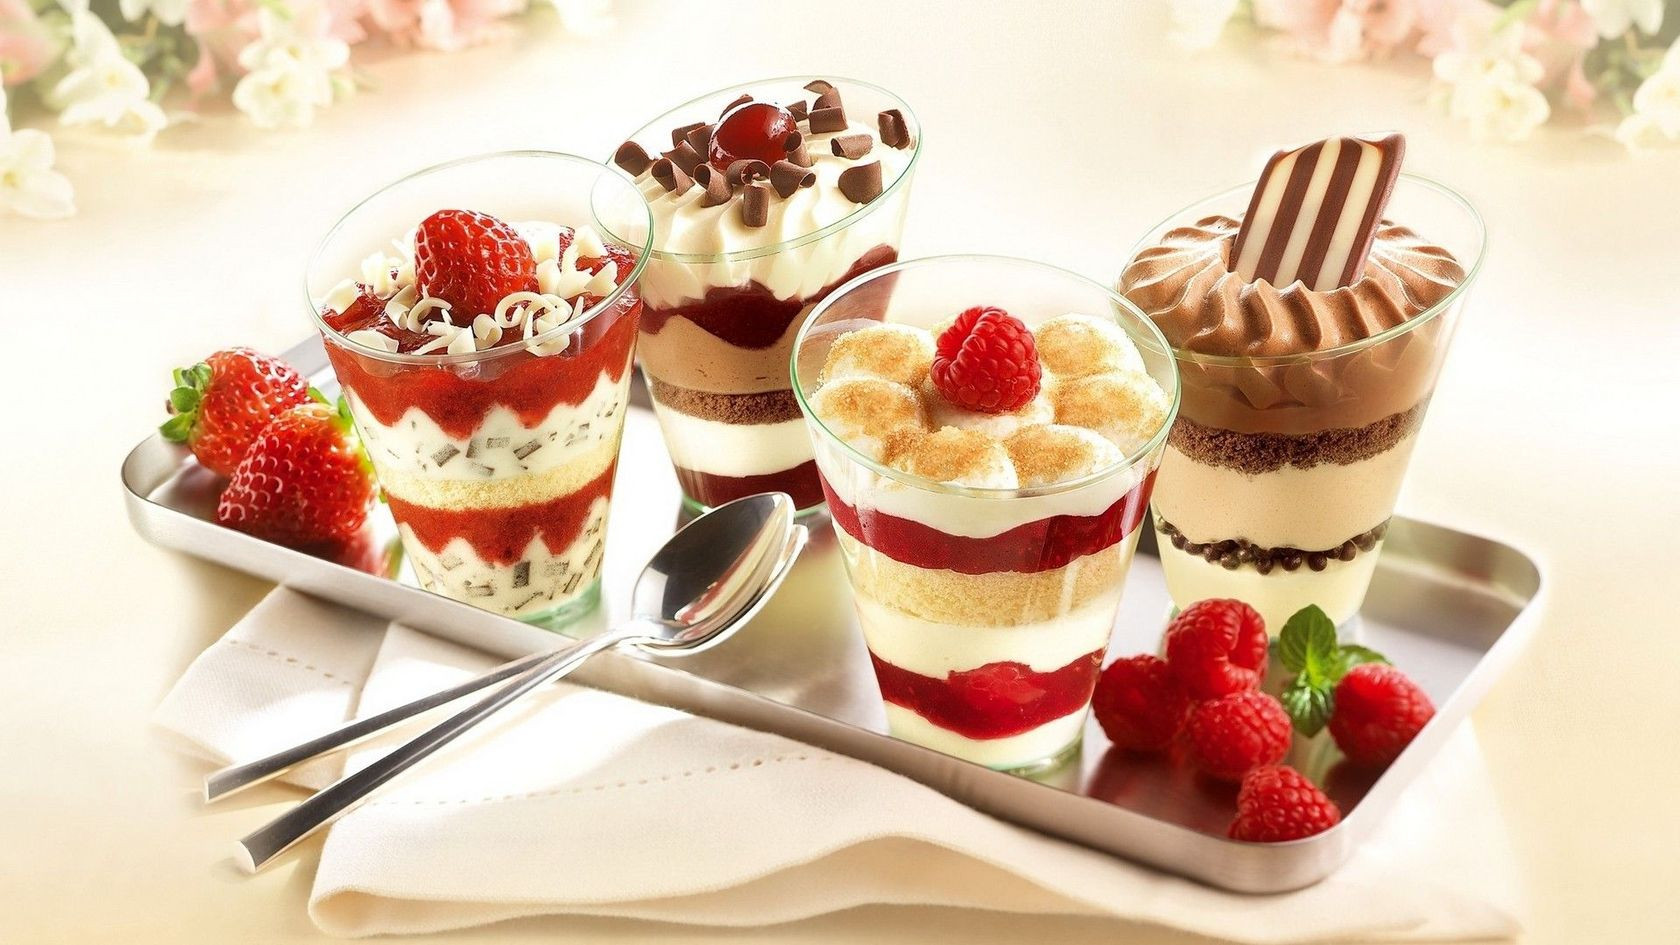 Most Delicious Desserts  The Most Delicious International Desserts